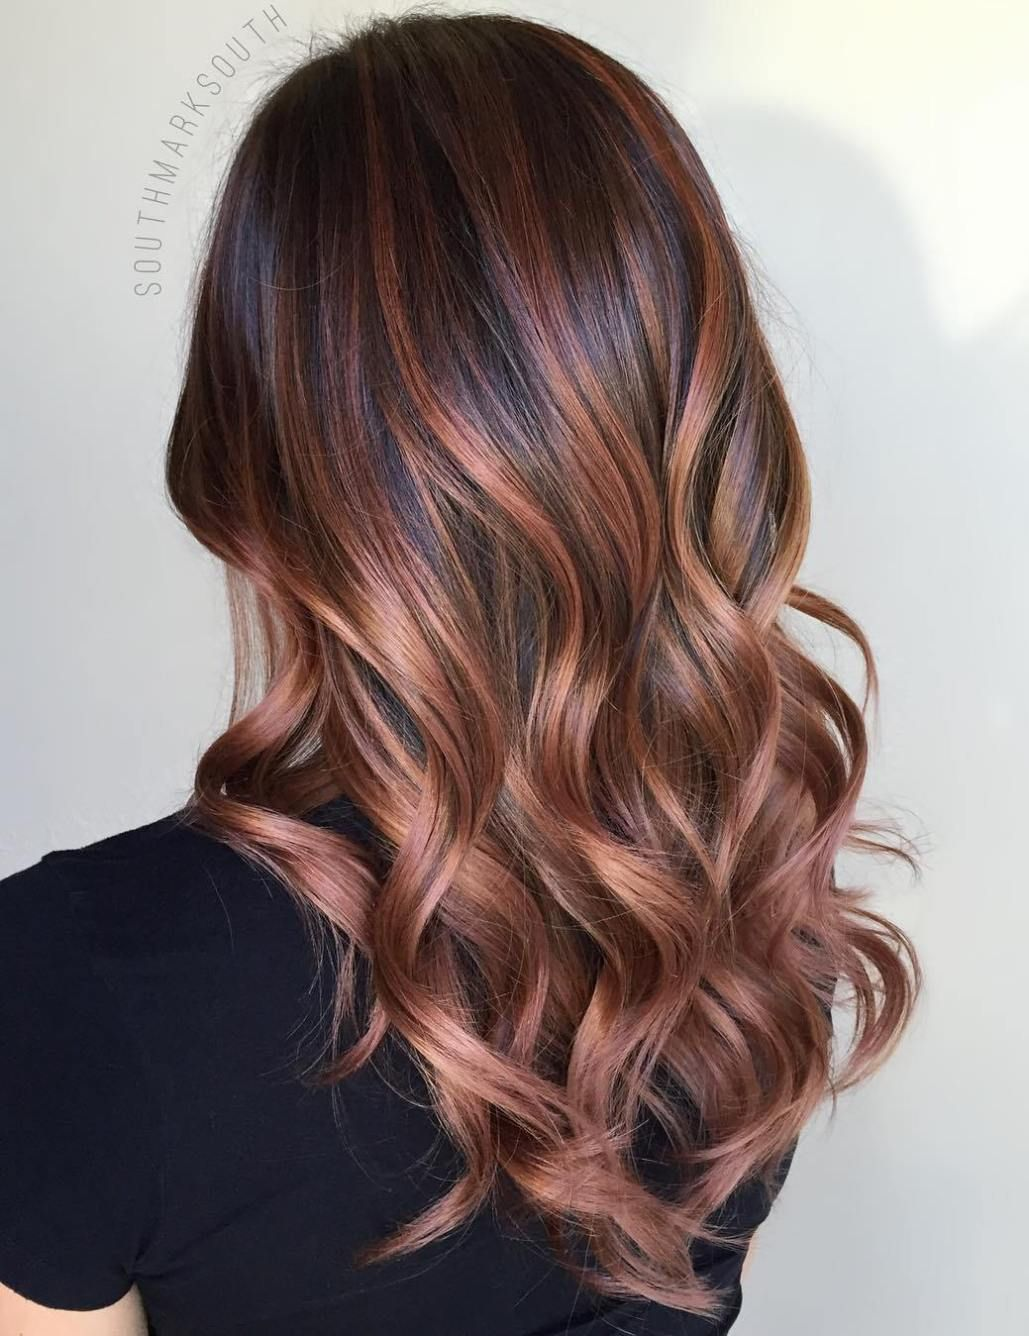 Brown Caramel hair color ideas pictures exclusive photo